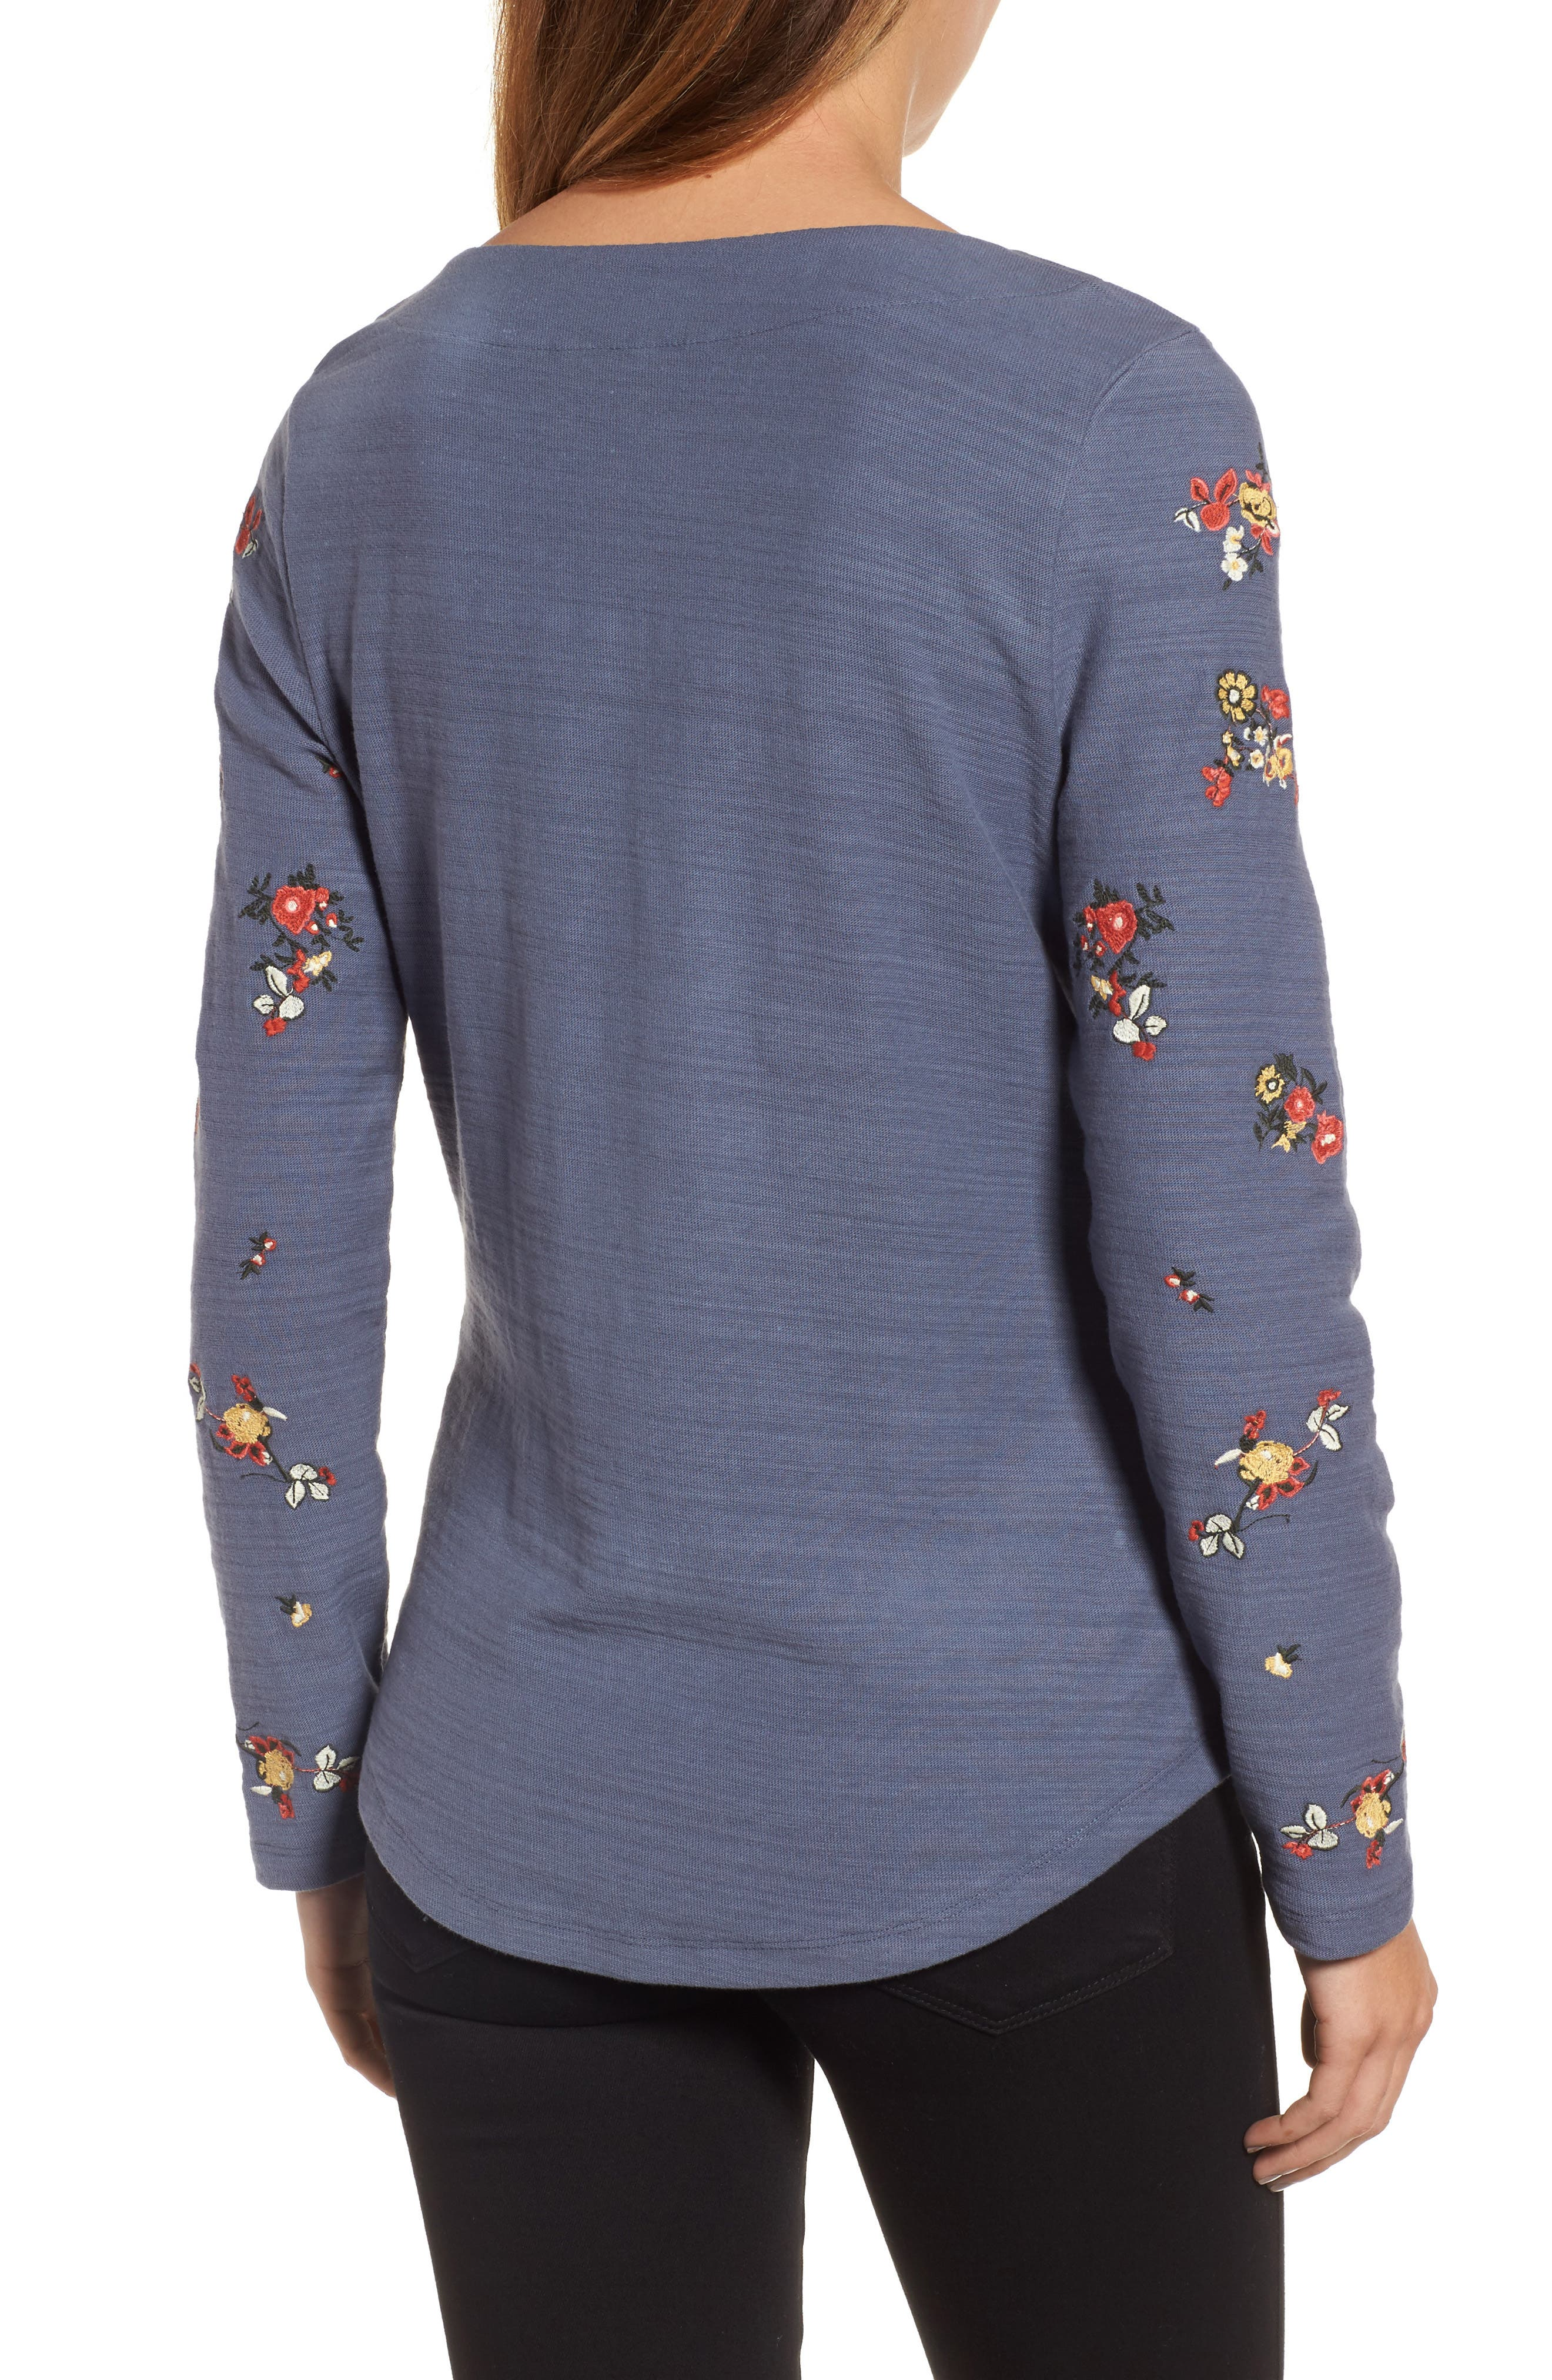 Lace-Up Neck Floral Embroidered Sweatshirt,                             Alternate thumbnail 3, color,